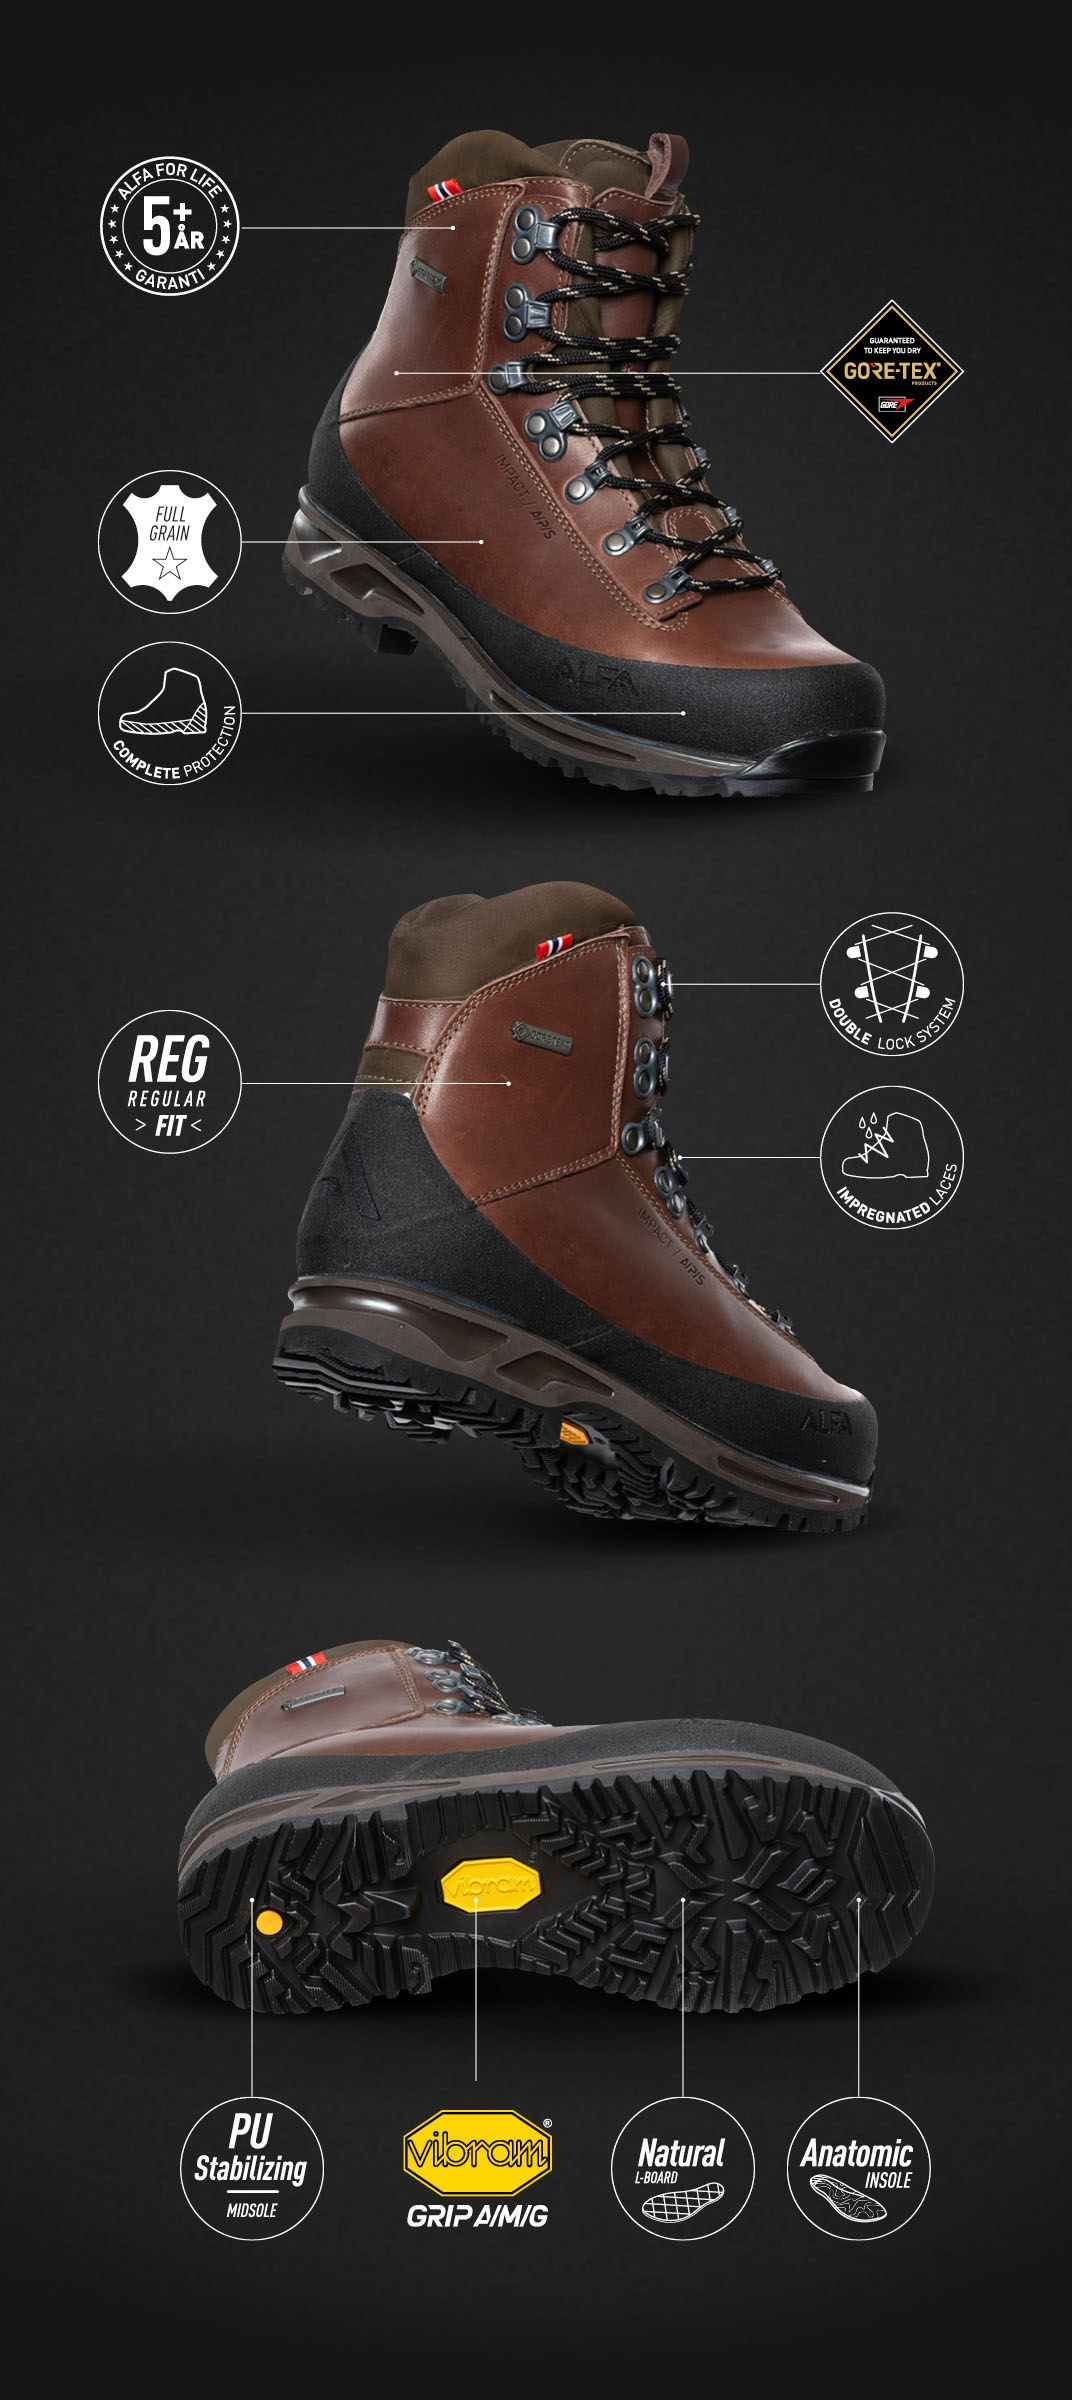 Impact A/P/S GTX - A walking shoe designed to last